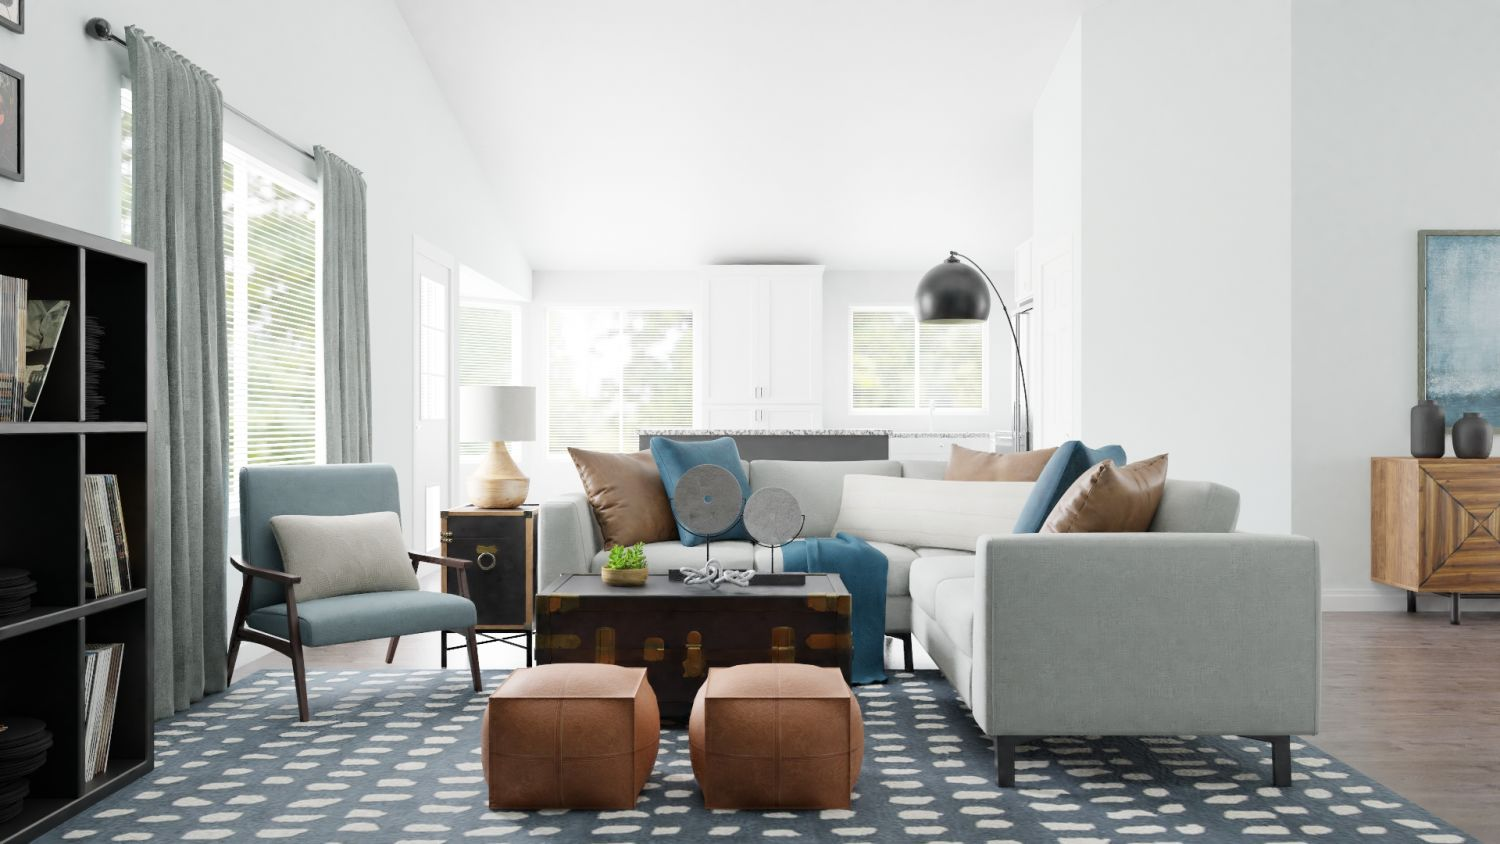 Statement Teal:  Urban Modern Living Room Design By Spacejoy